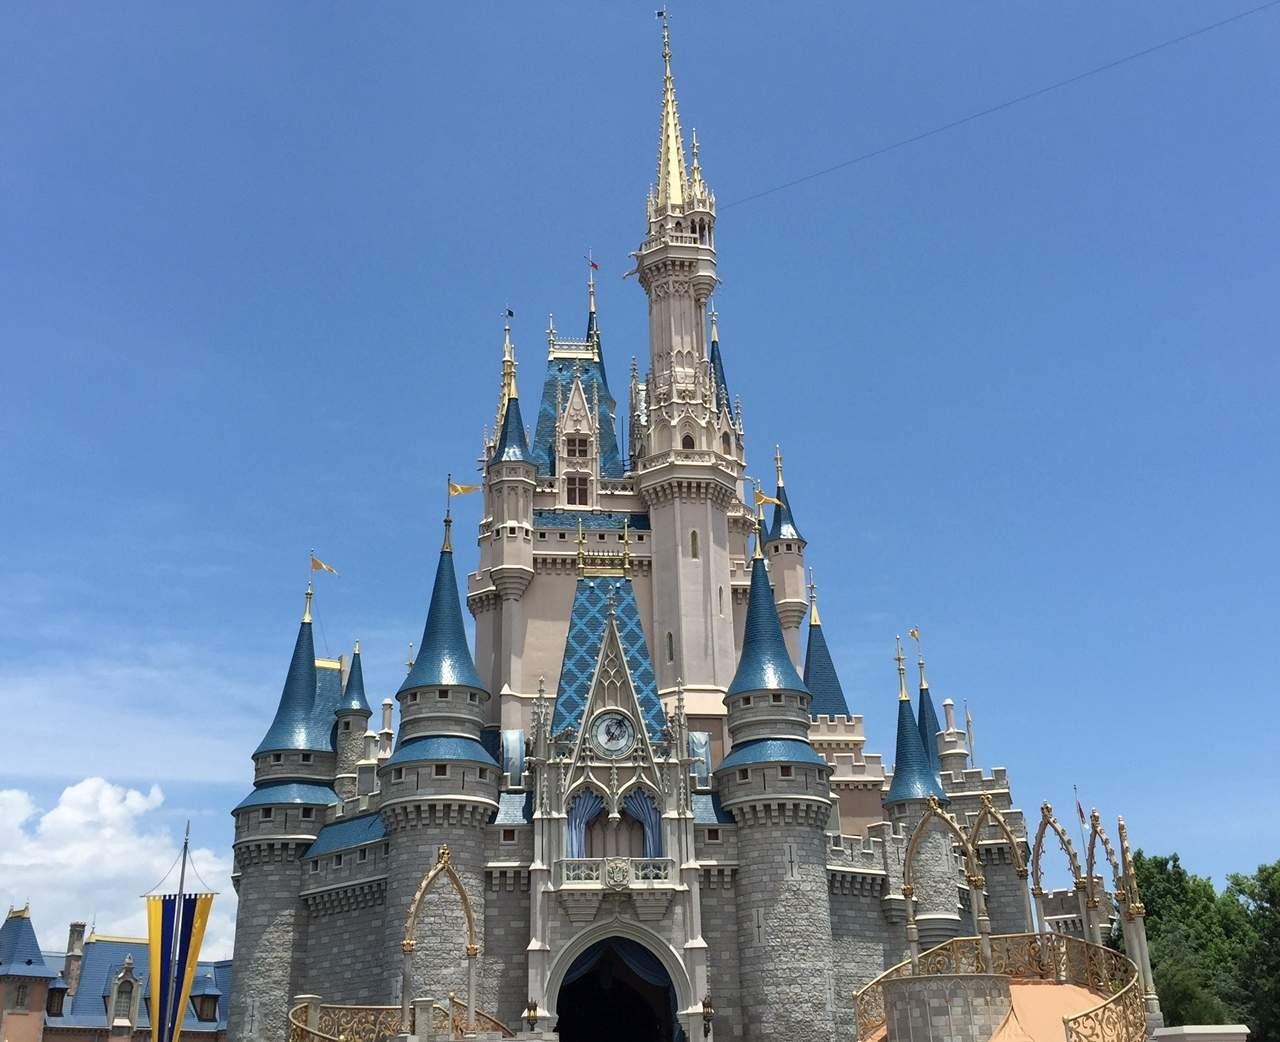 Explained: Disney World's new date-based tickets